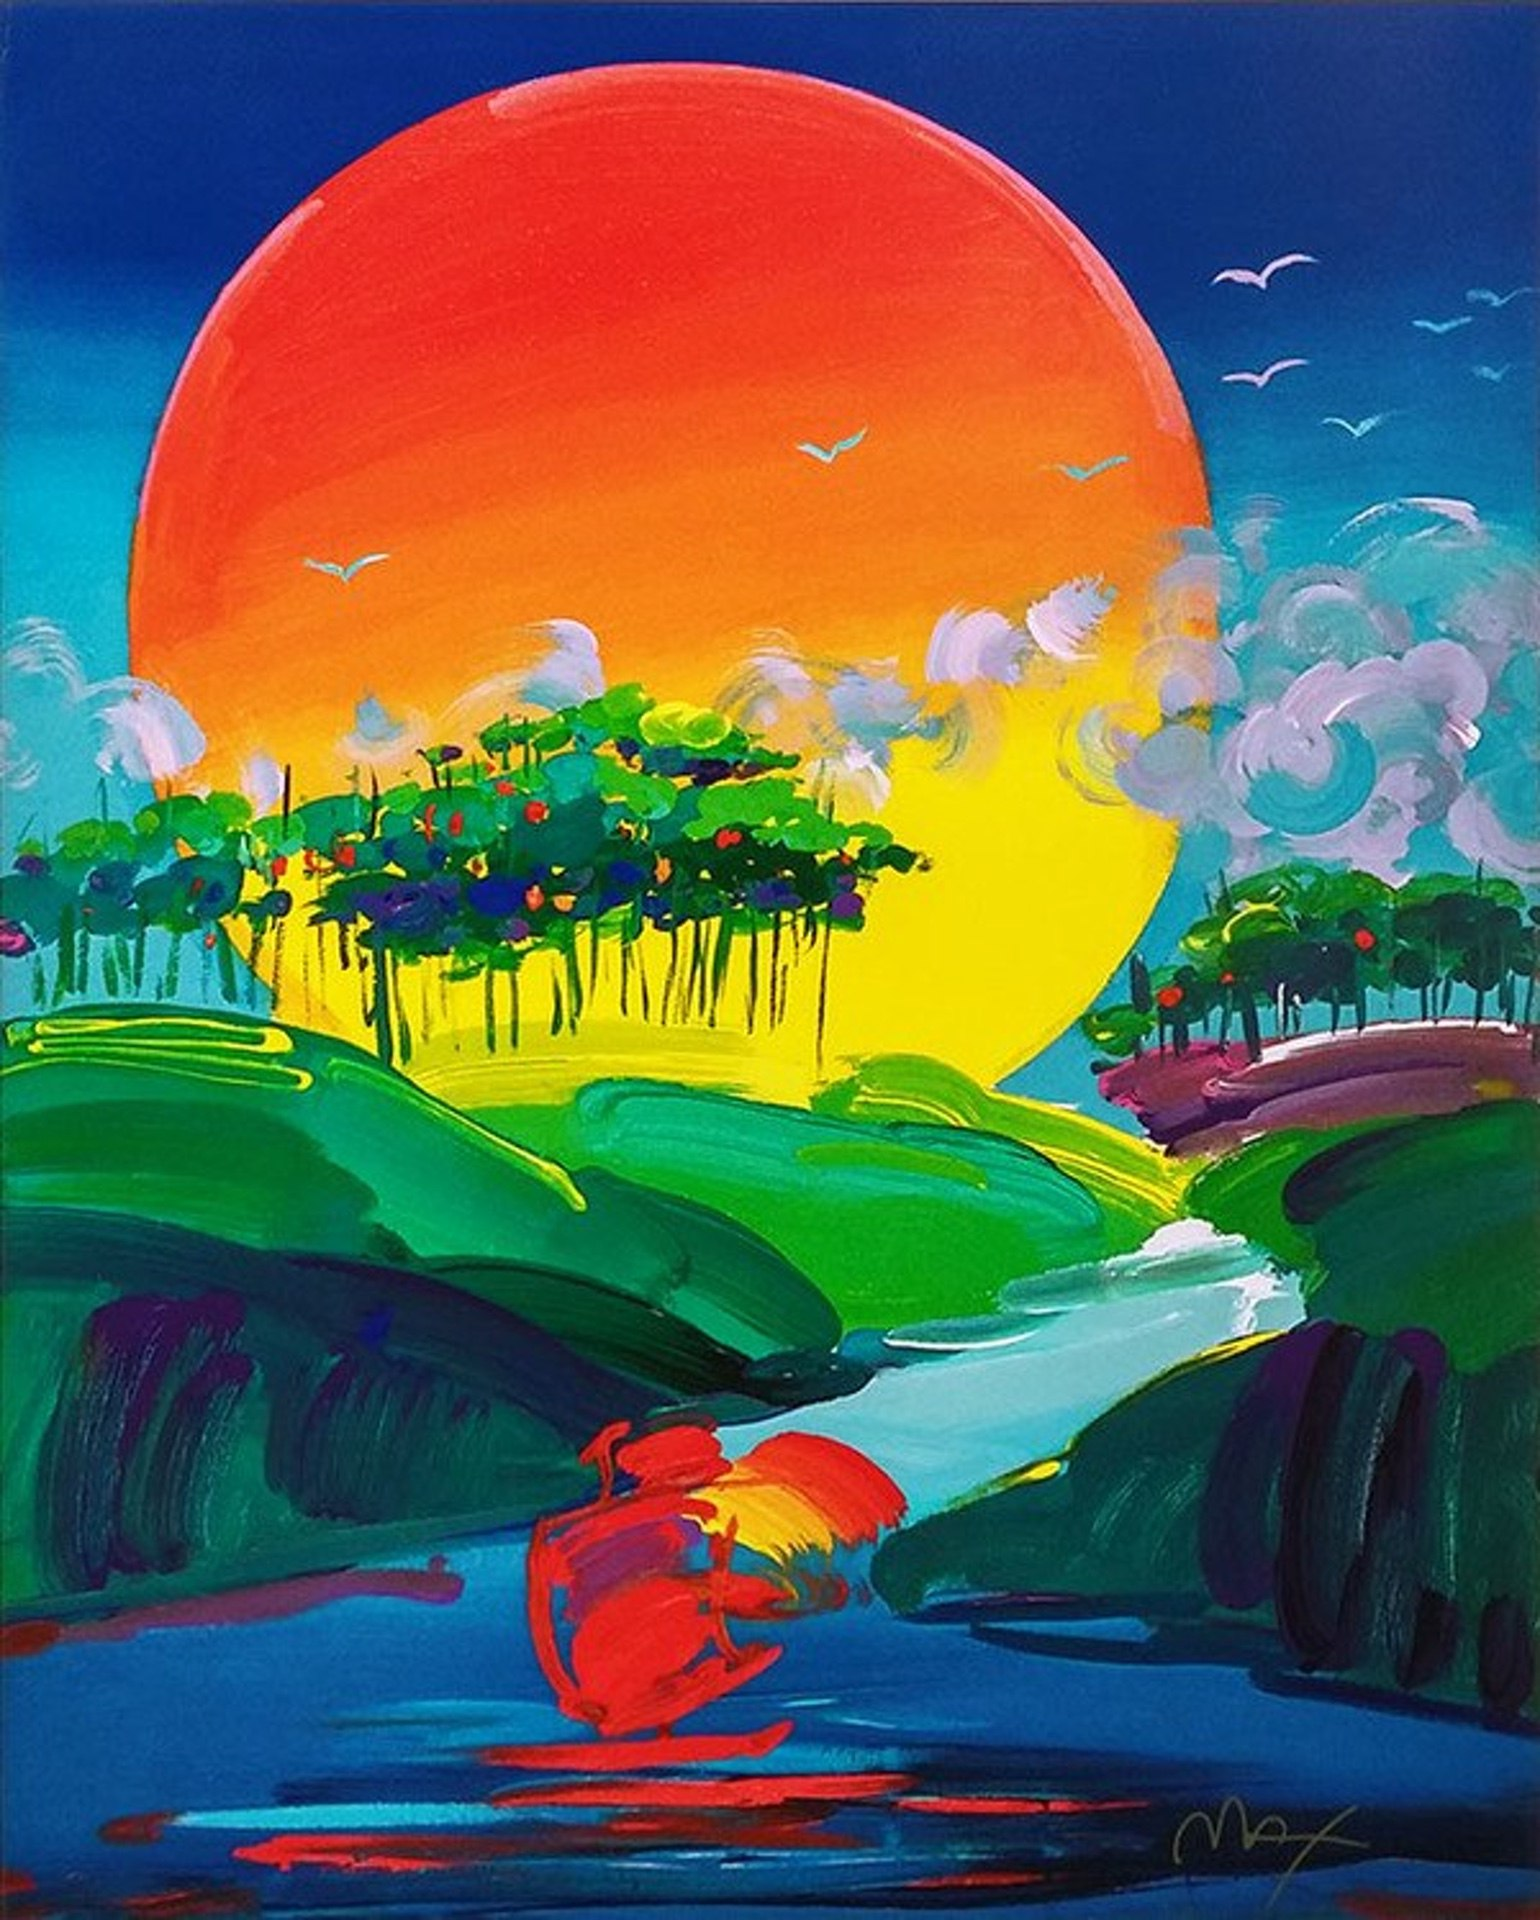 Without Borders (2011) by Peter Max - Pako Campo